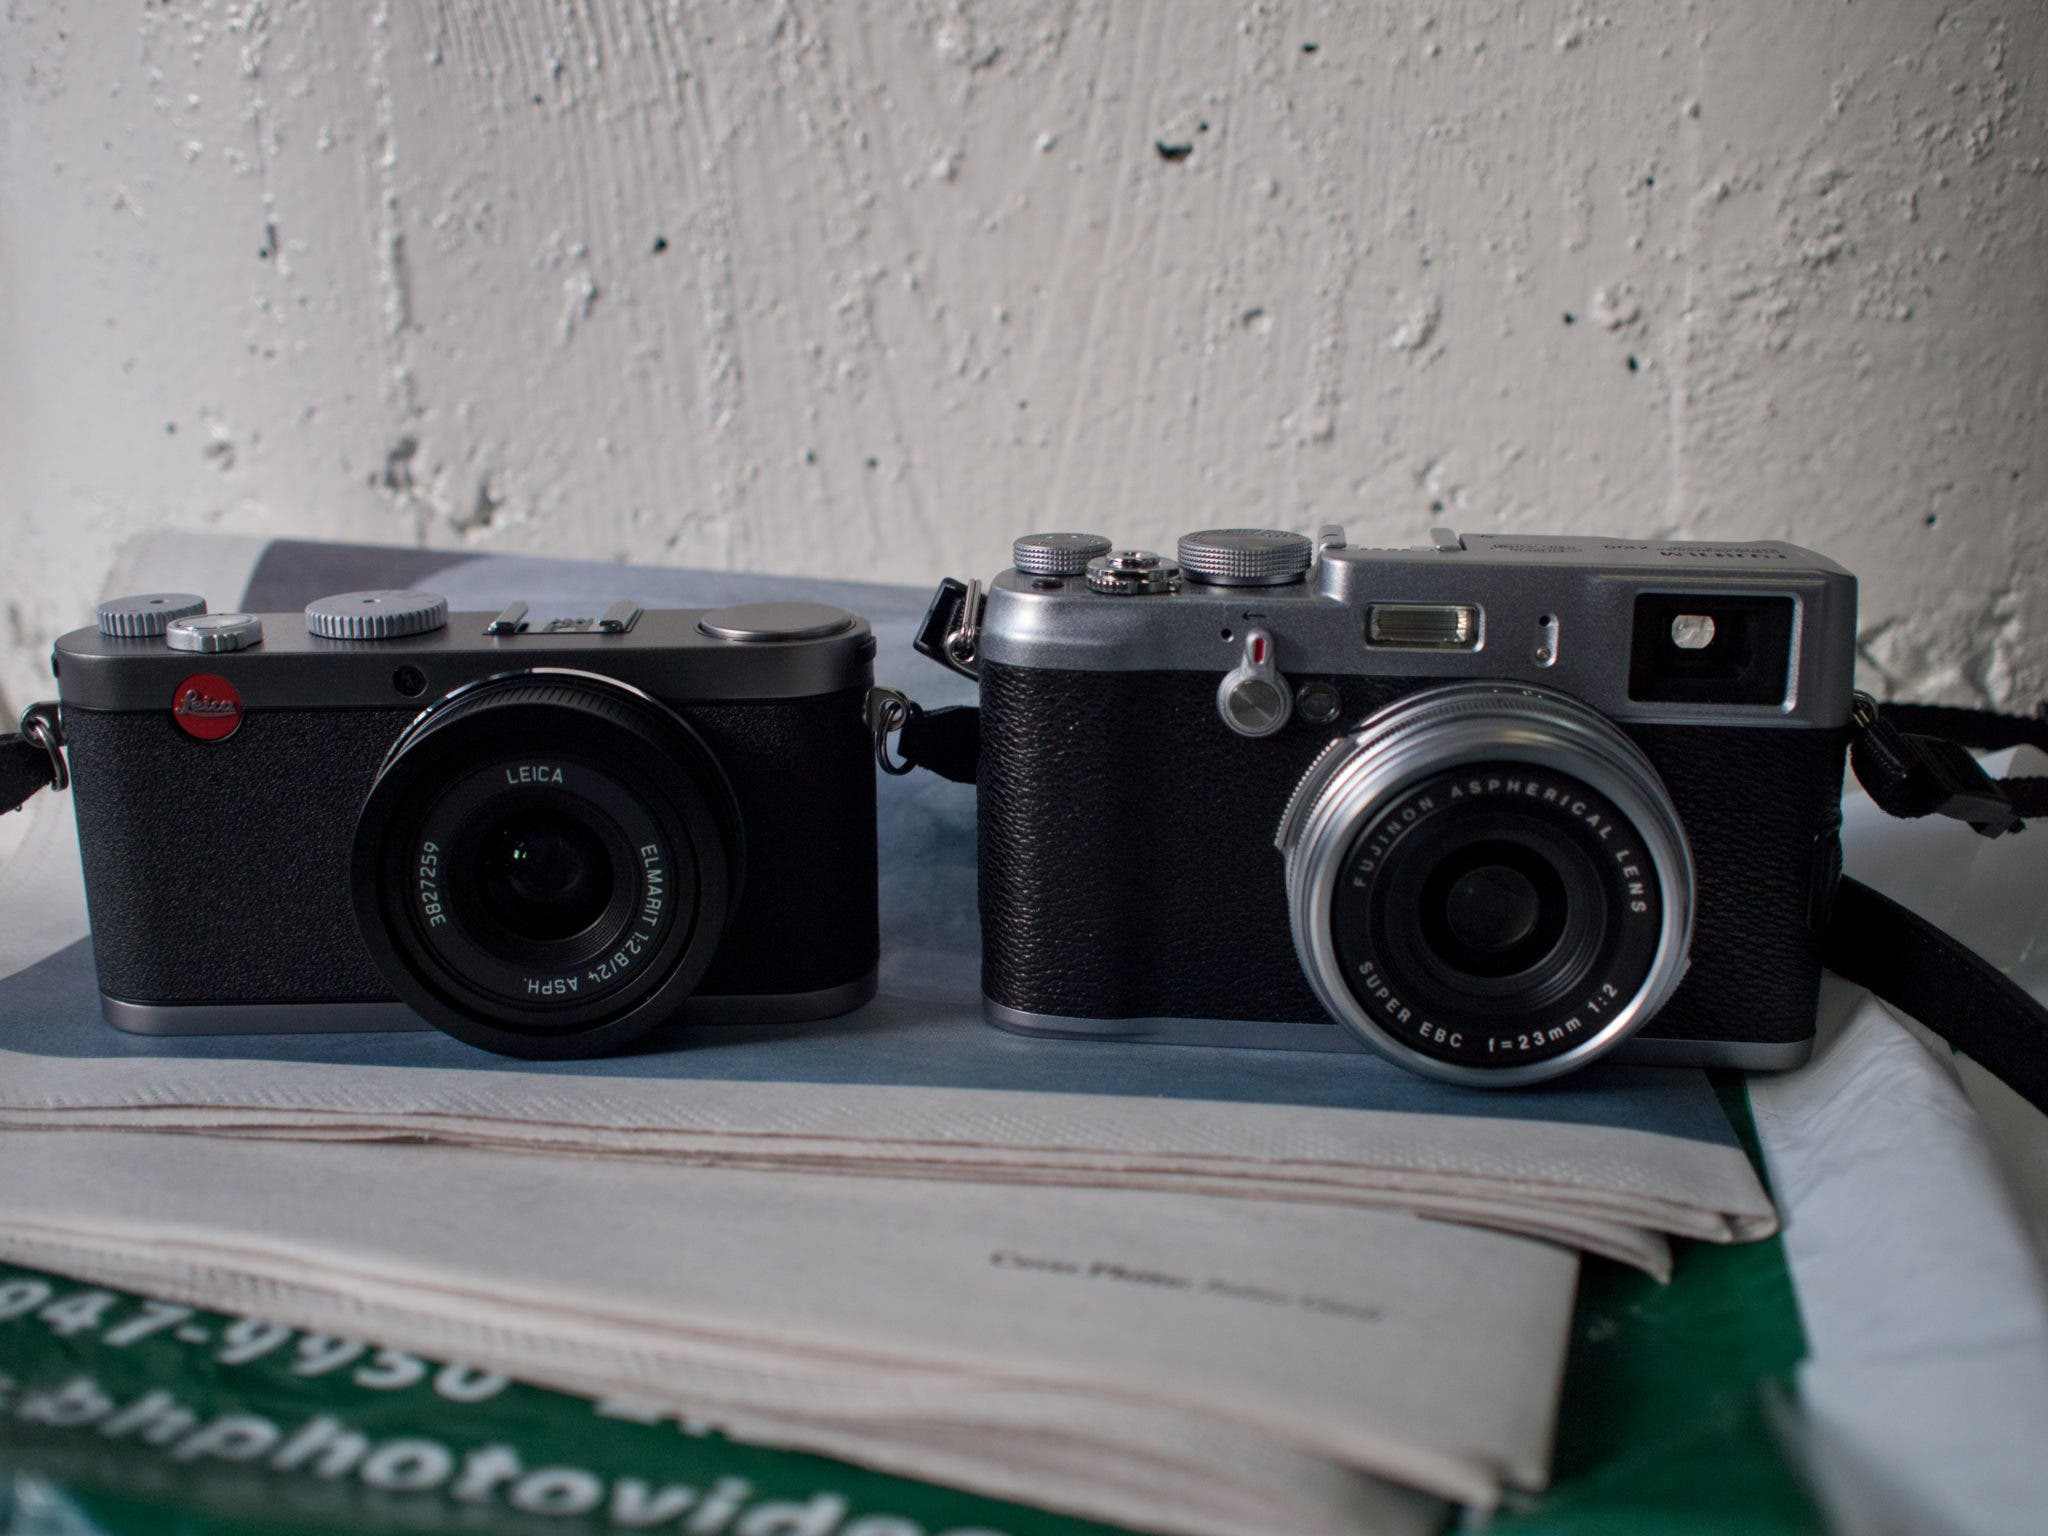 Leica X1 vs Fuji X100: Which Photos Are from Which Camera?